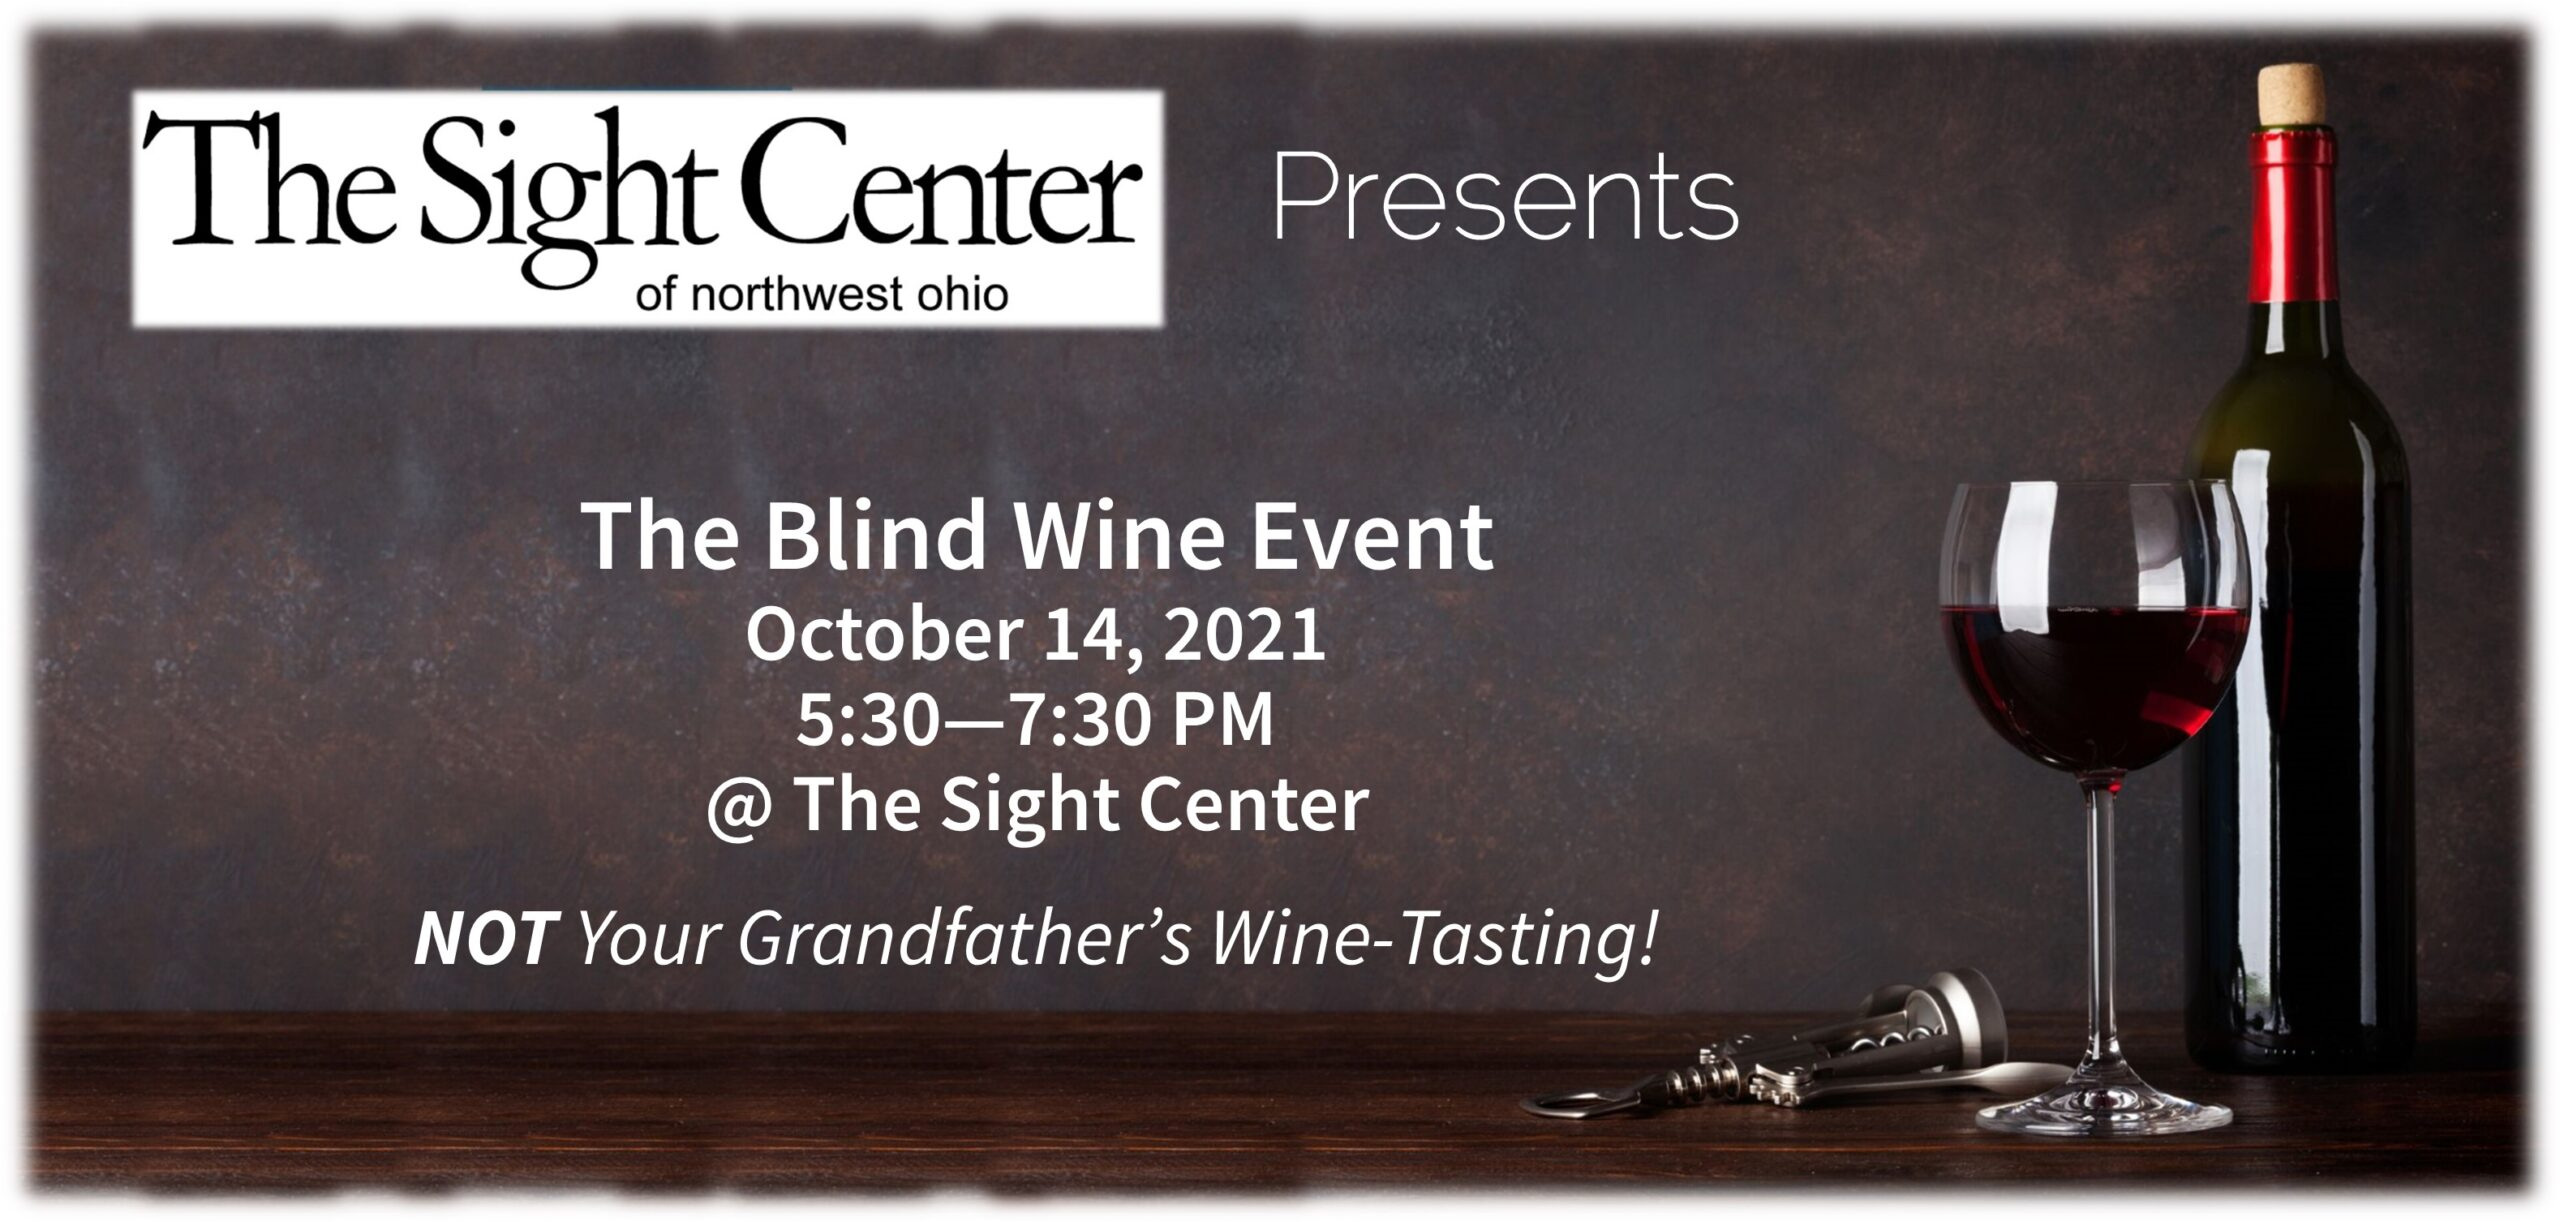 A picture of a wine bottle, wine glass, The Sight Center logo and event date and time